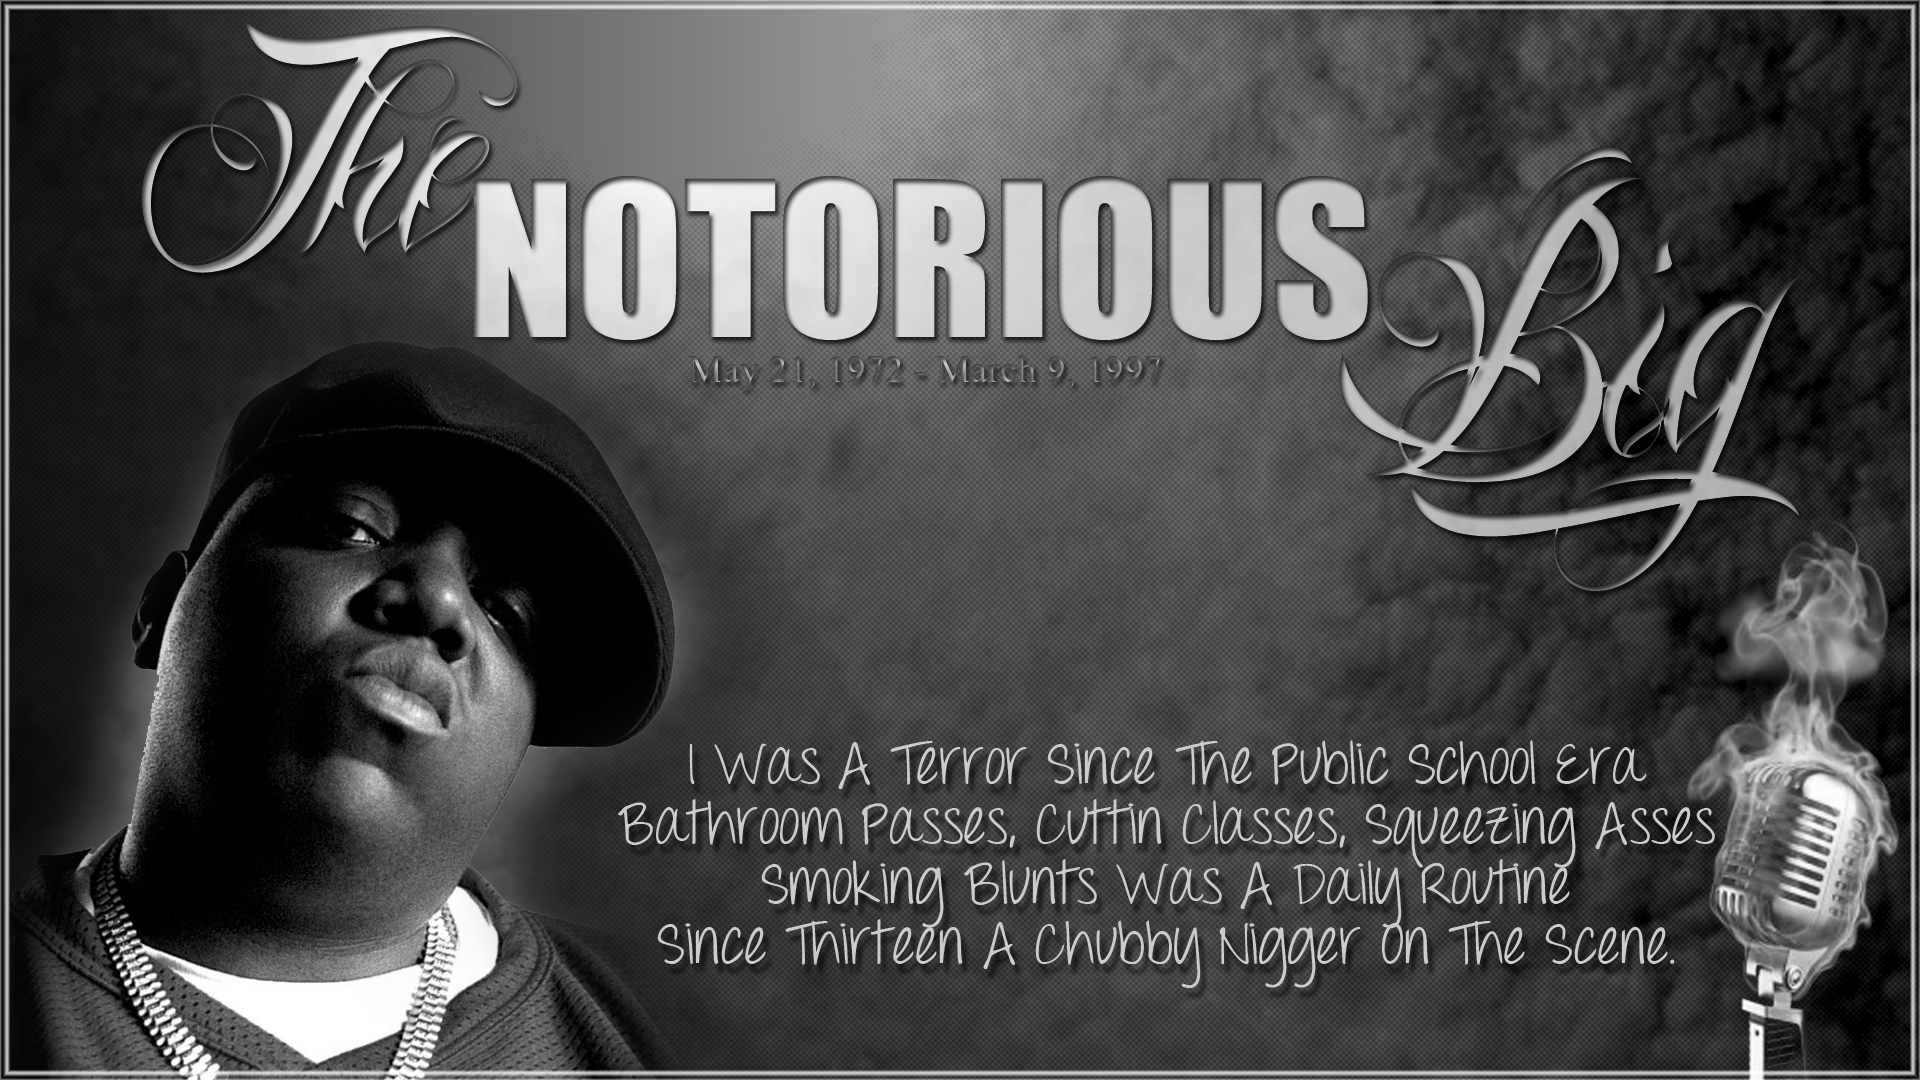 Notorious B I G Wallpapers 4K Ultra HD